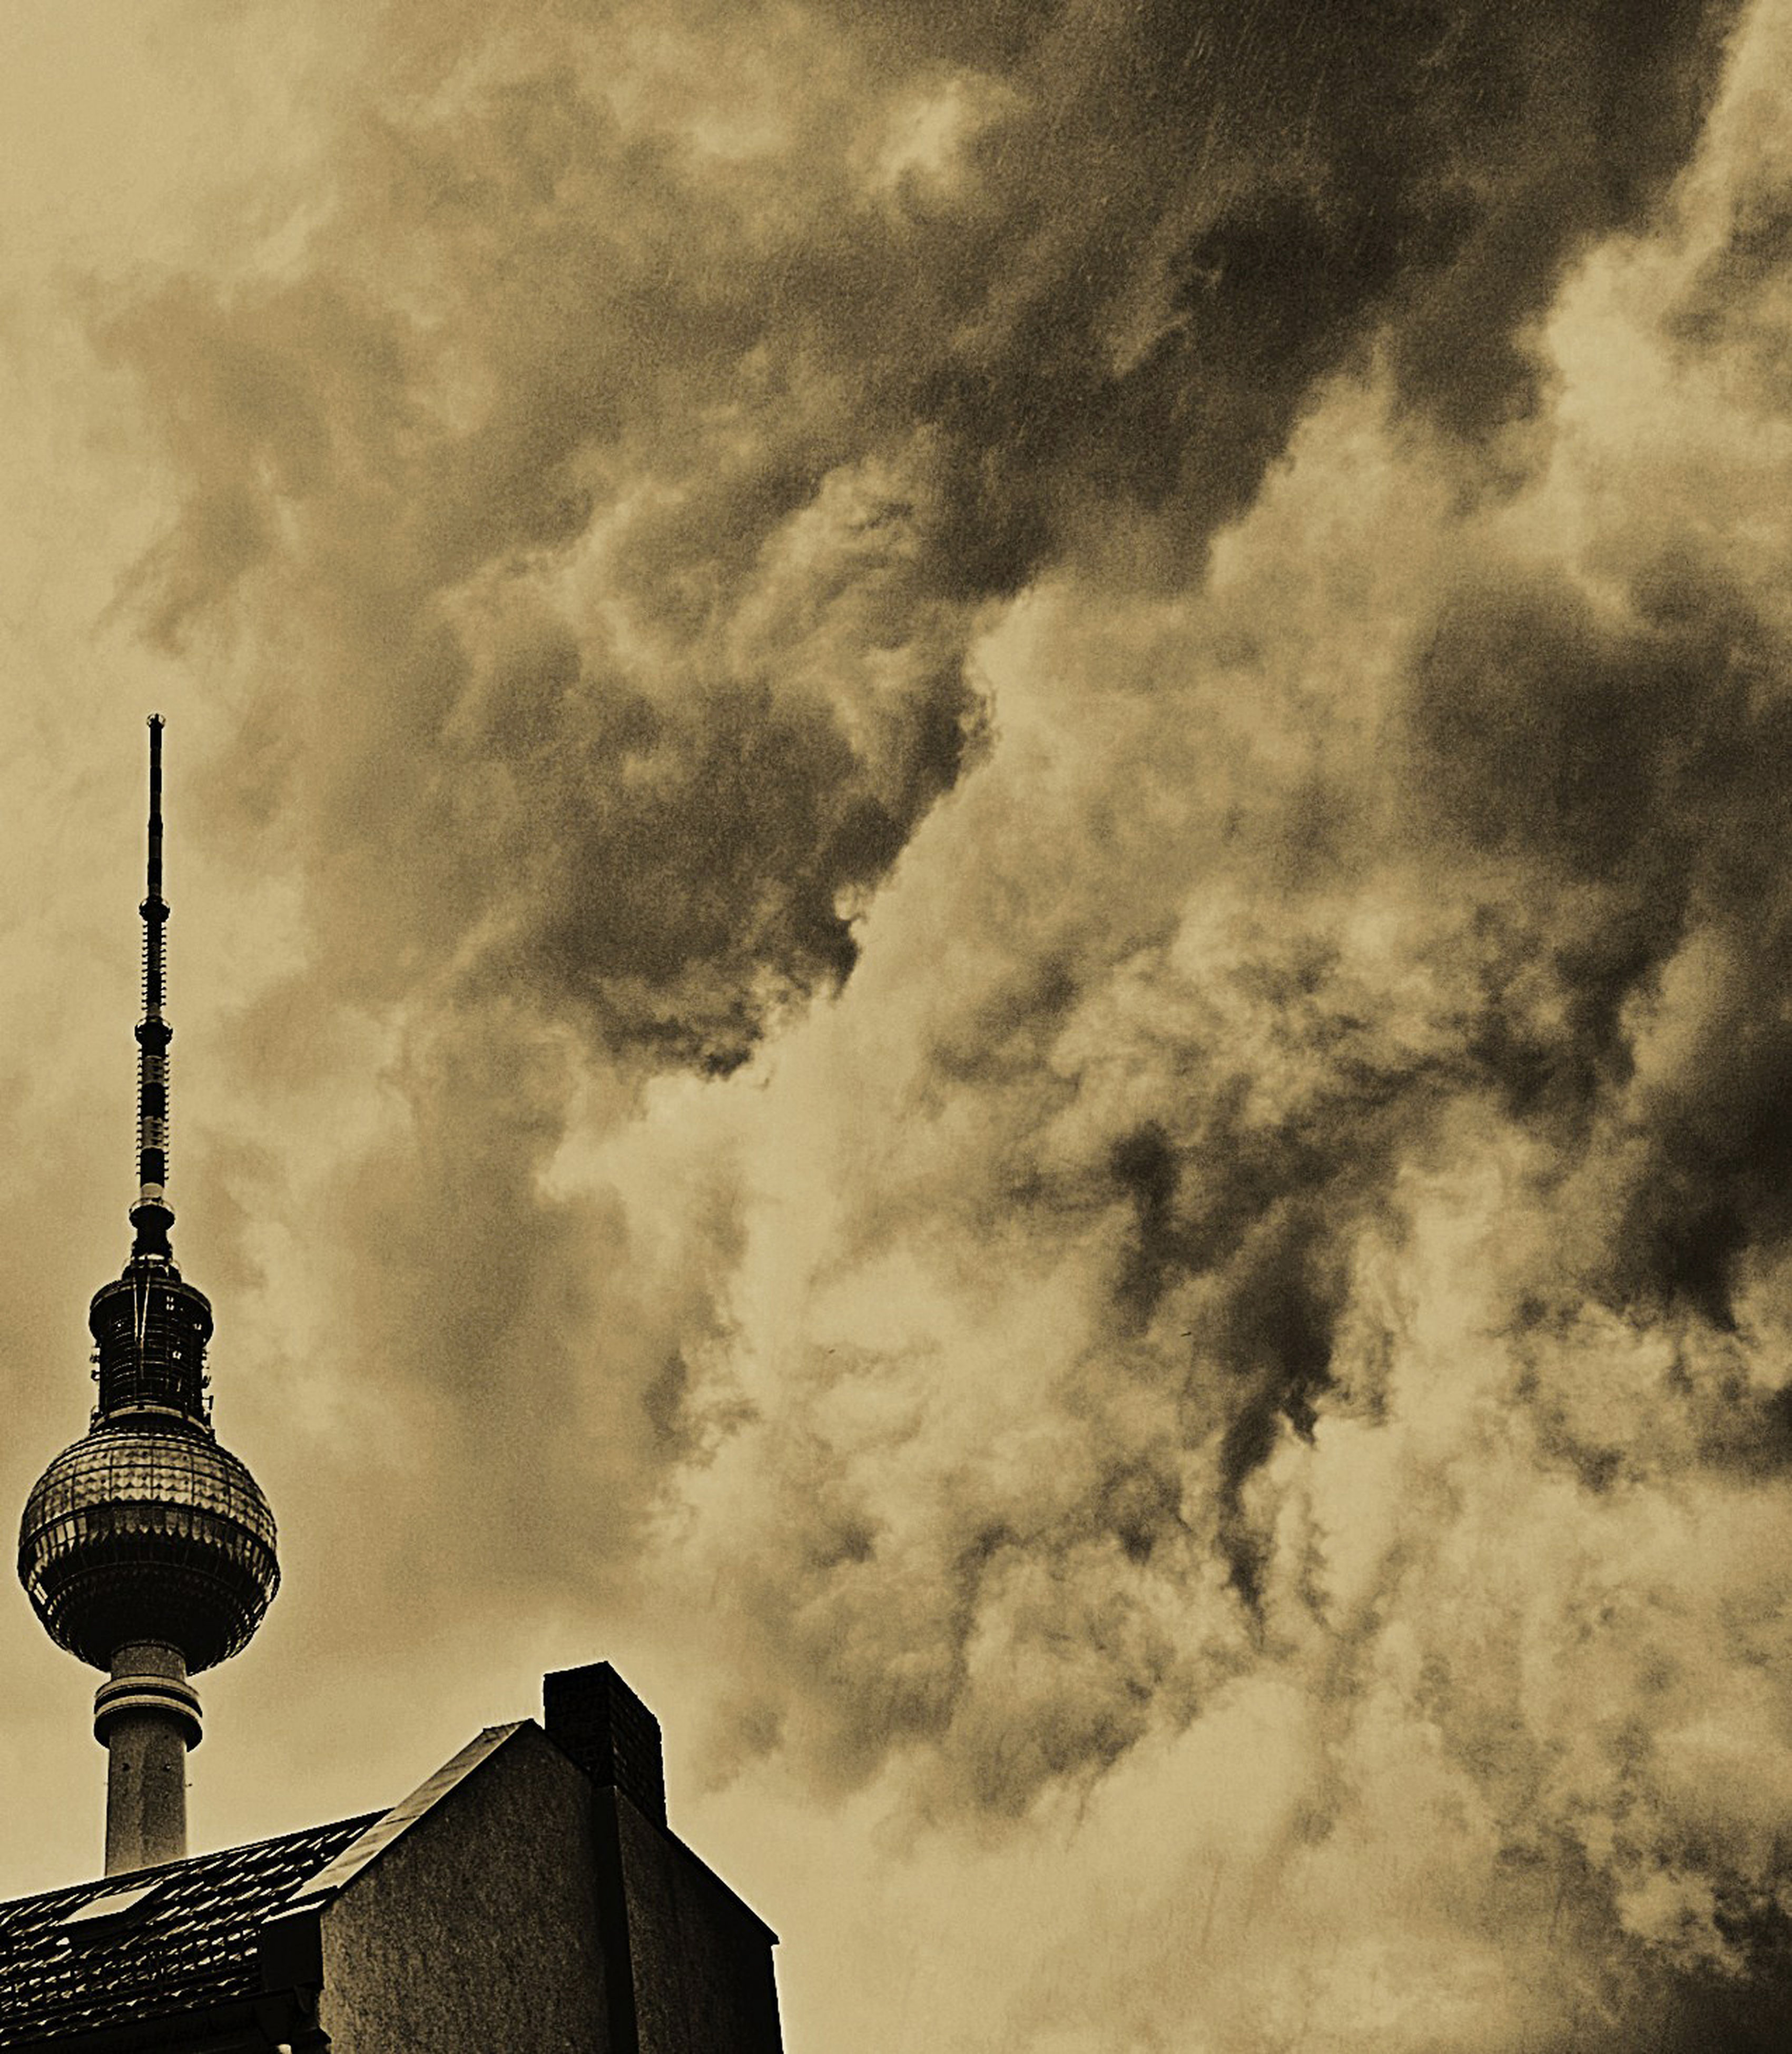 building exterior, architecture, built structure, tower, communications tower, tall - high, city, sky, communication, spire, capital cities, low angle view, famous place, international landmark, travel destinations, cloud - sky, skyscraper, television tower, fernsehturm, tourism